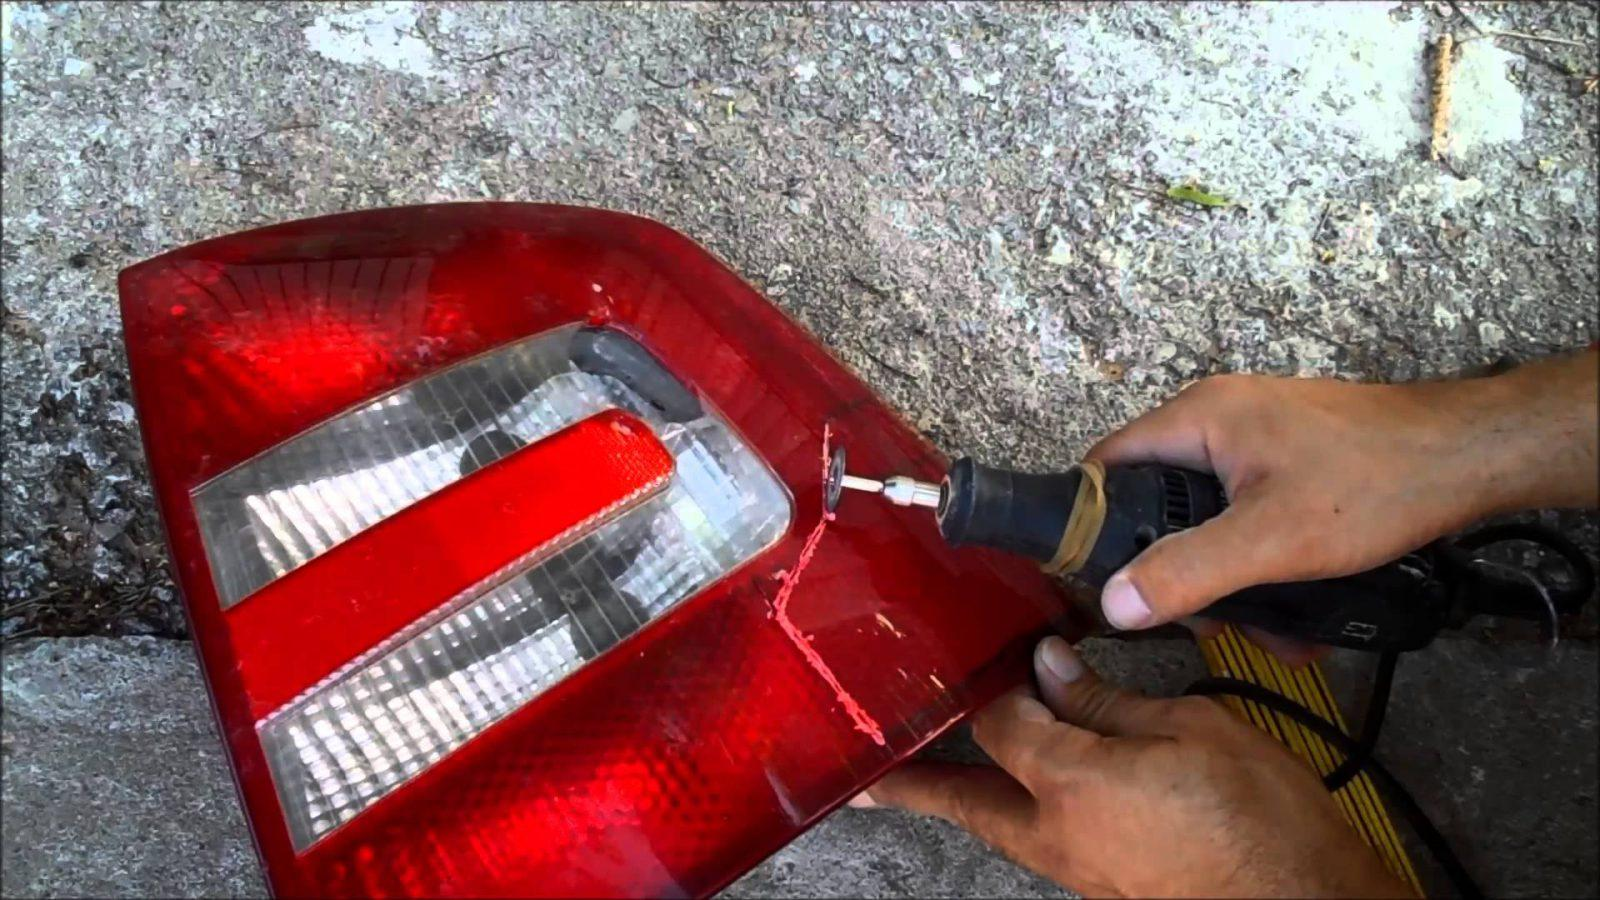 Tail light repair how to fix broken tail light at home tail light repair aloadofball Choice Image